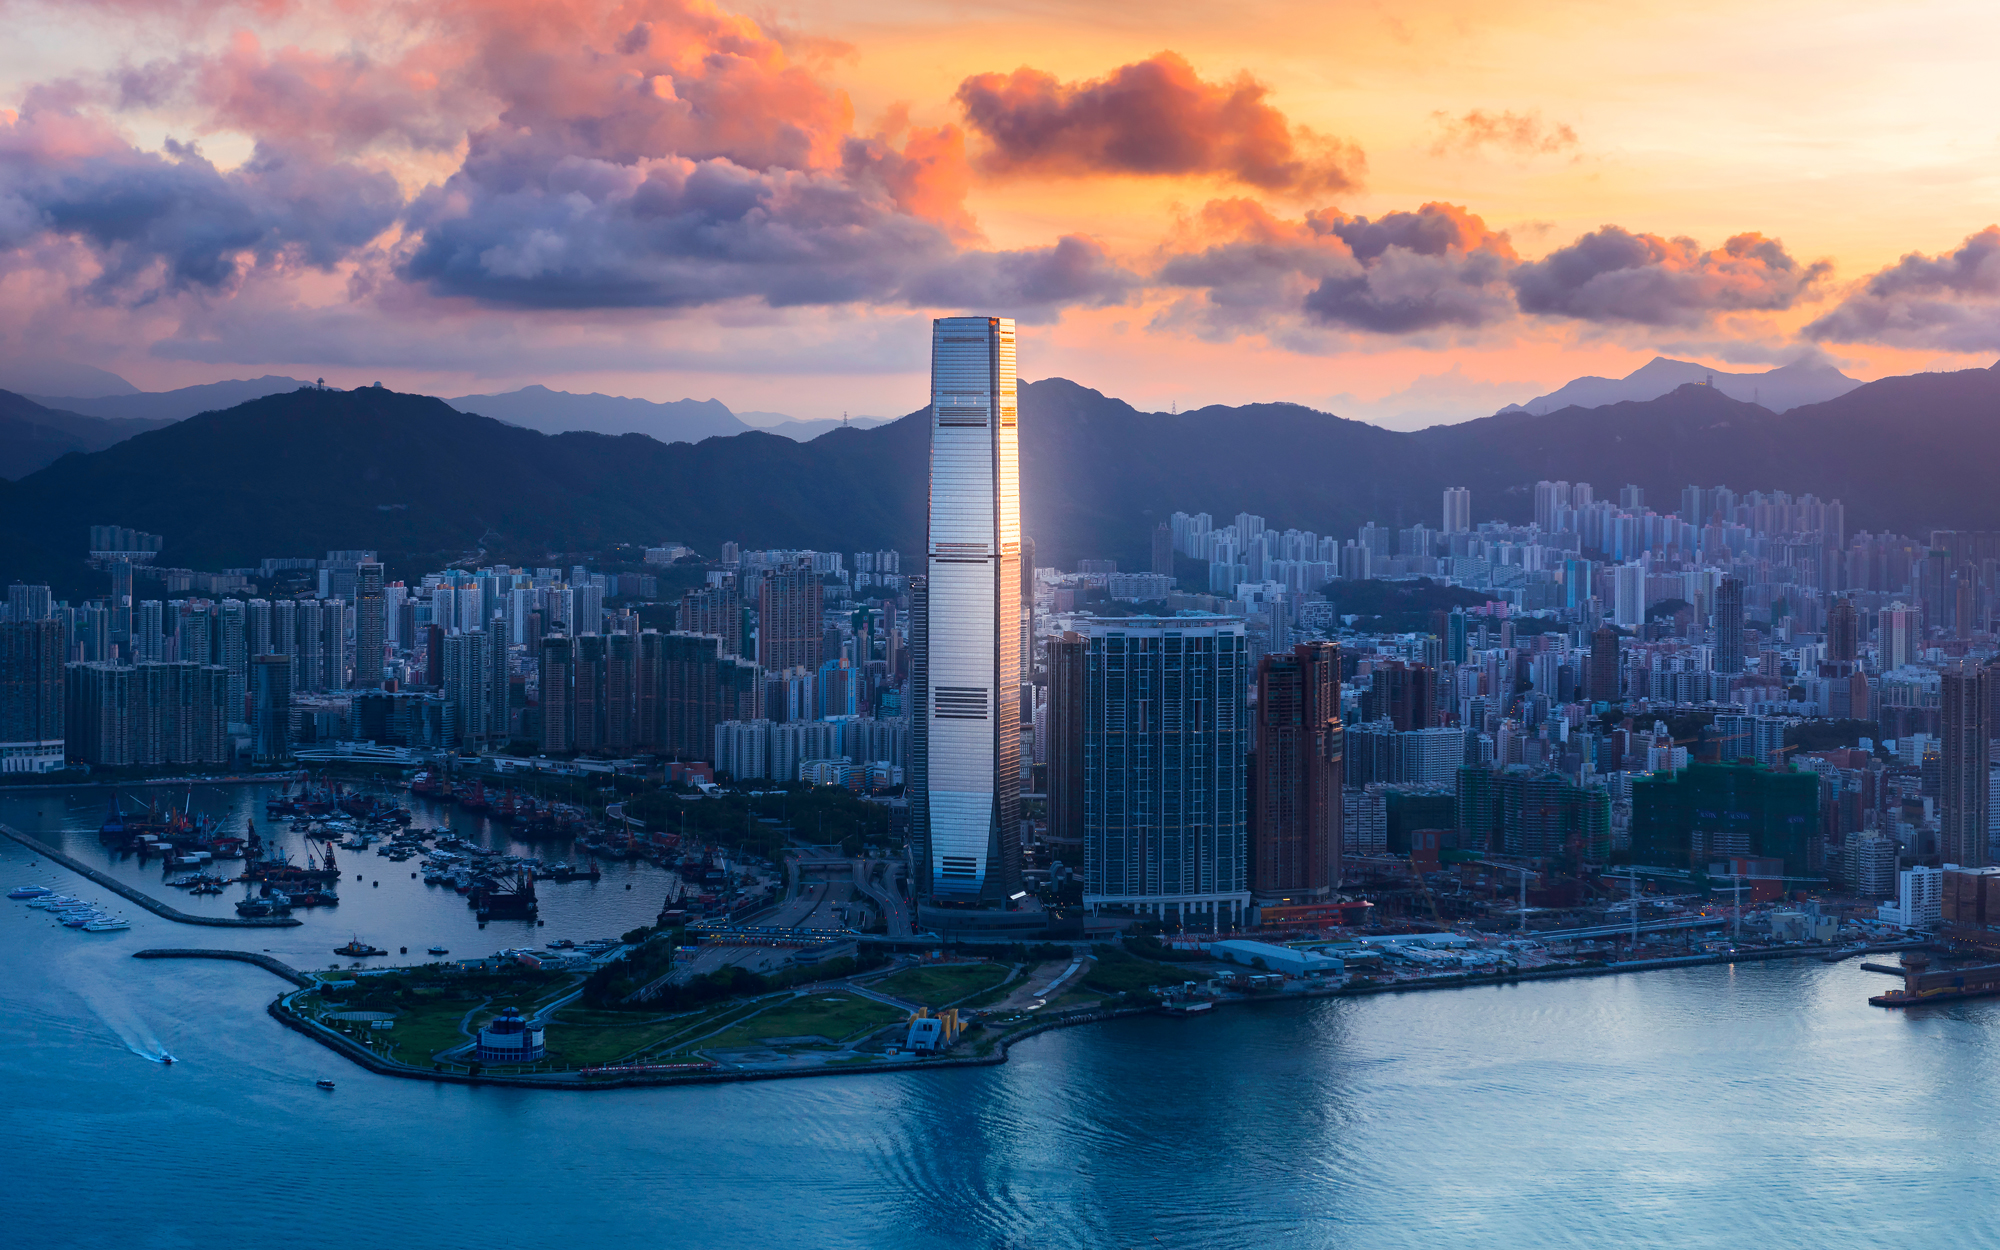 10. International Commerce Centre, Hong Kong (1,588 feet)